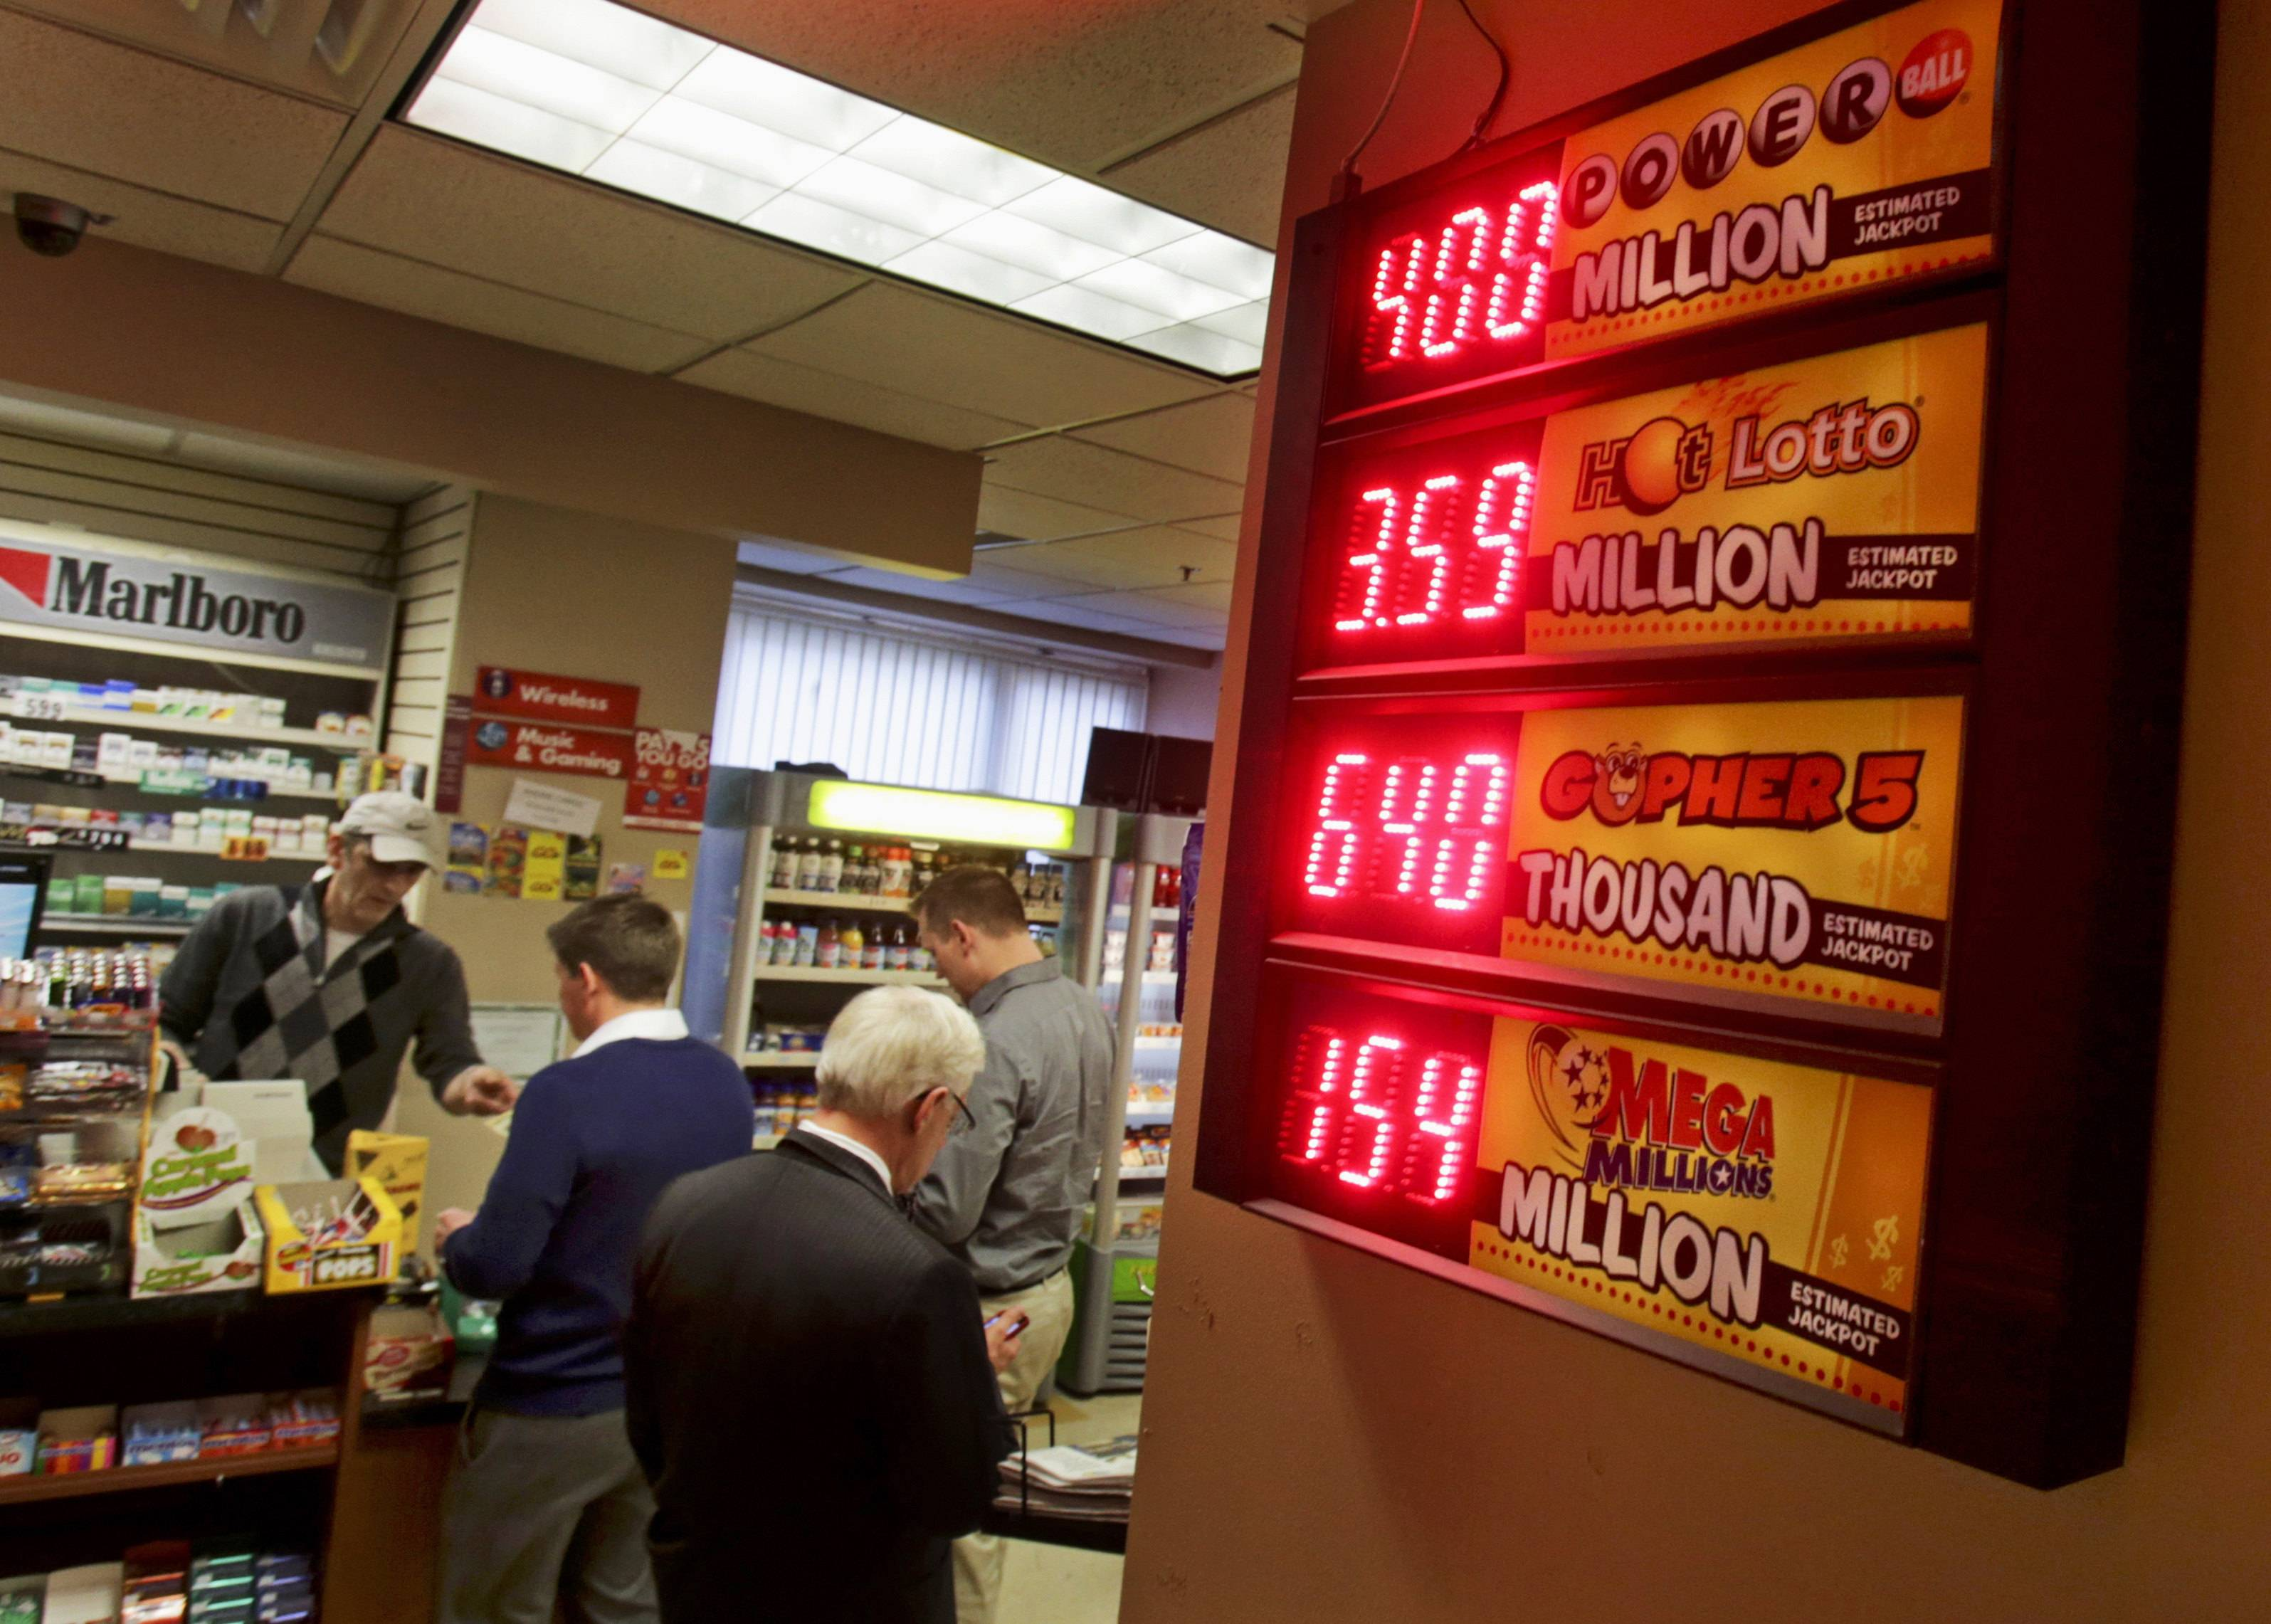 Wednesday's Powerball drawing carries an estimated $400 million jackpot. If no one matches all the numbers, the prize potential will grow before the next drawing on Saturday.